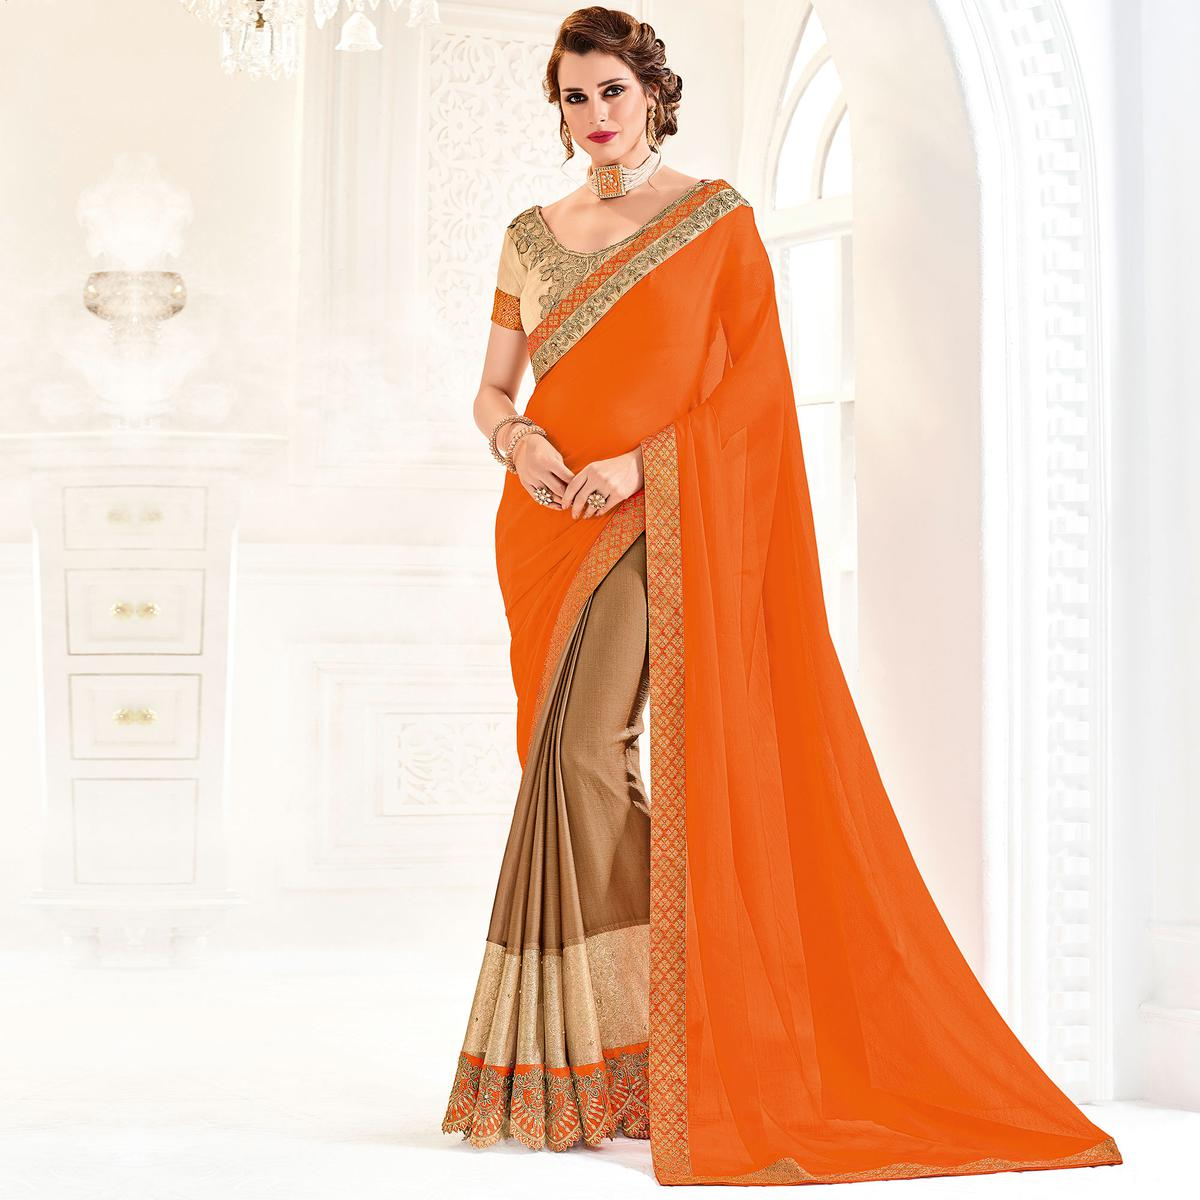 Orange And Brown Colored Designer Embroidered Moss Chiffon Saree